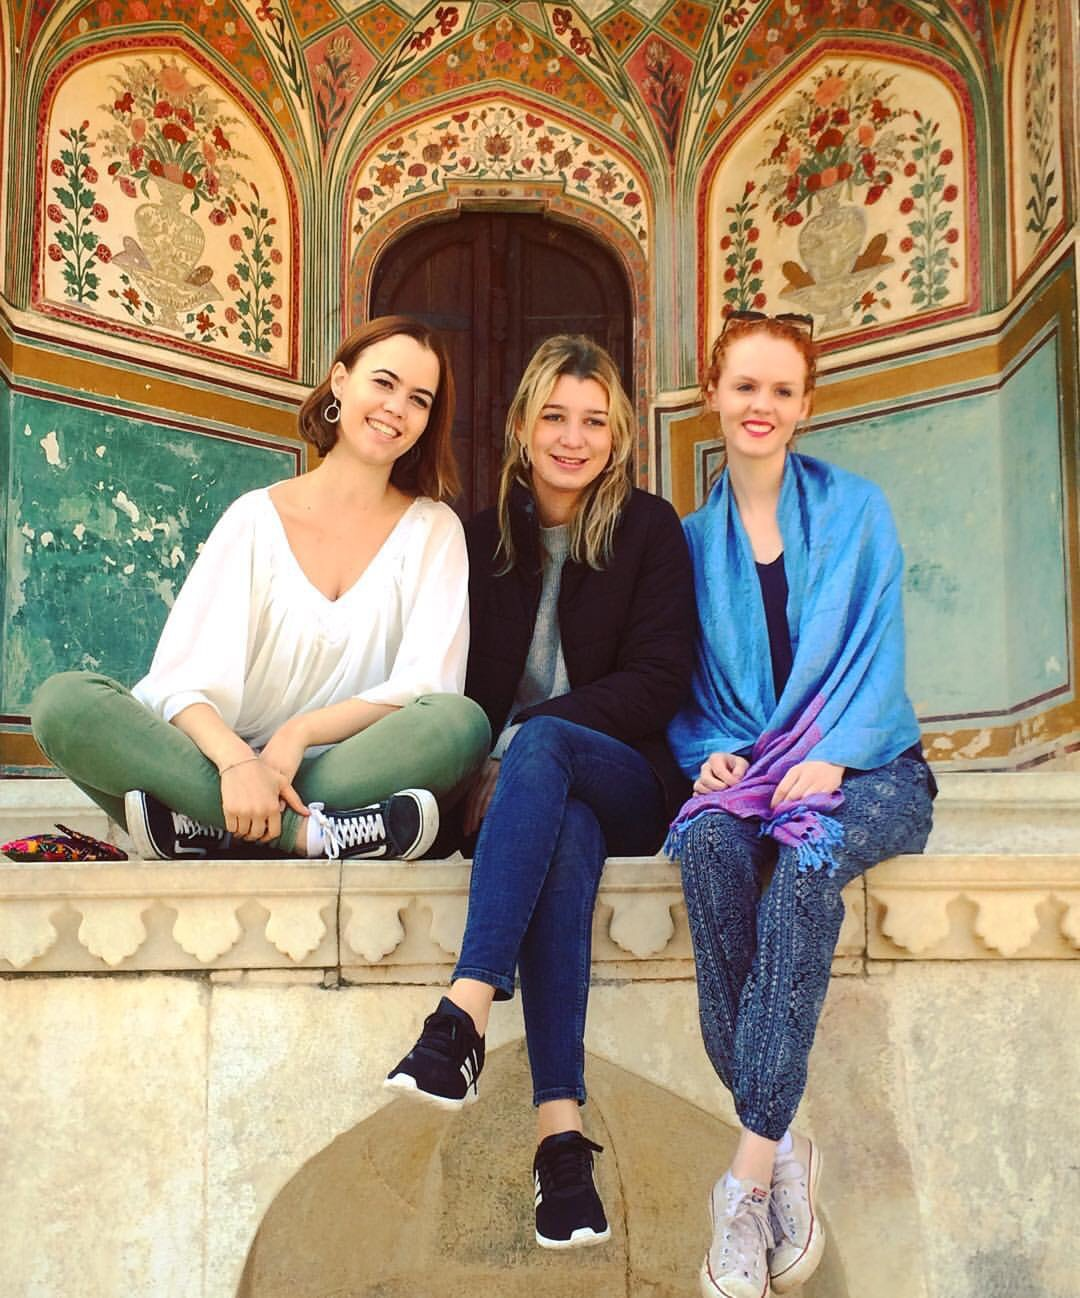 At Amber Fort, Alice, Charlotte and Maddie